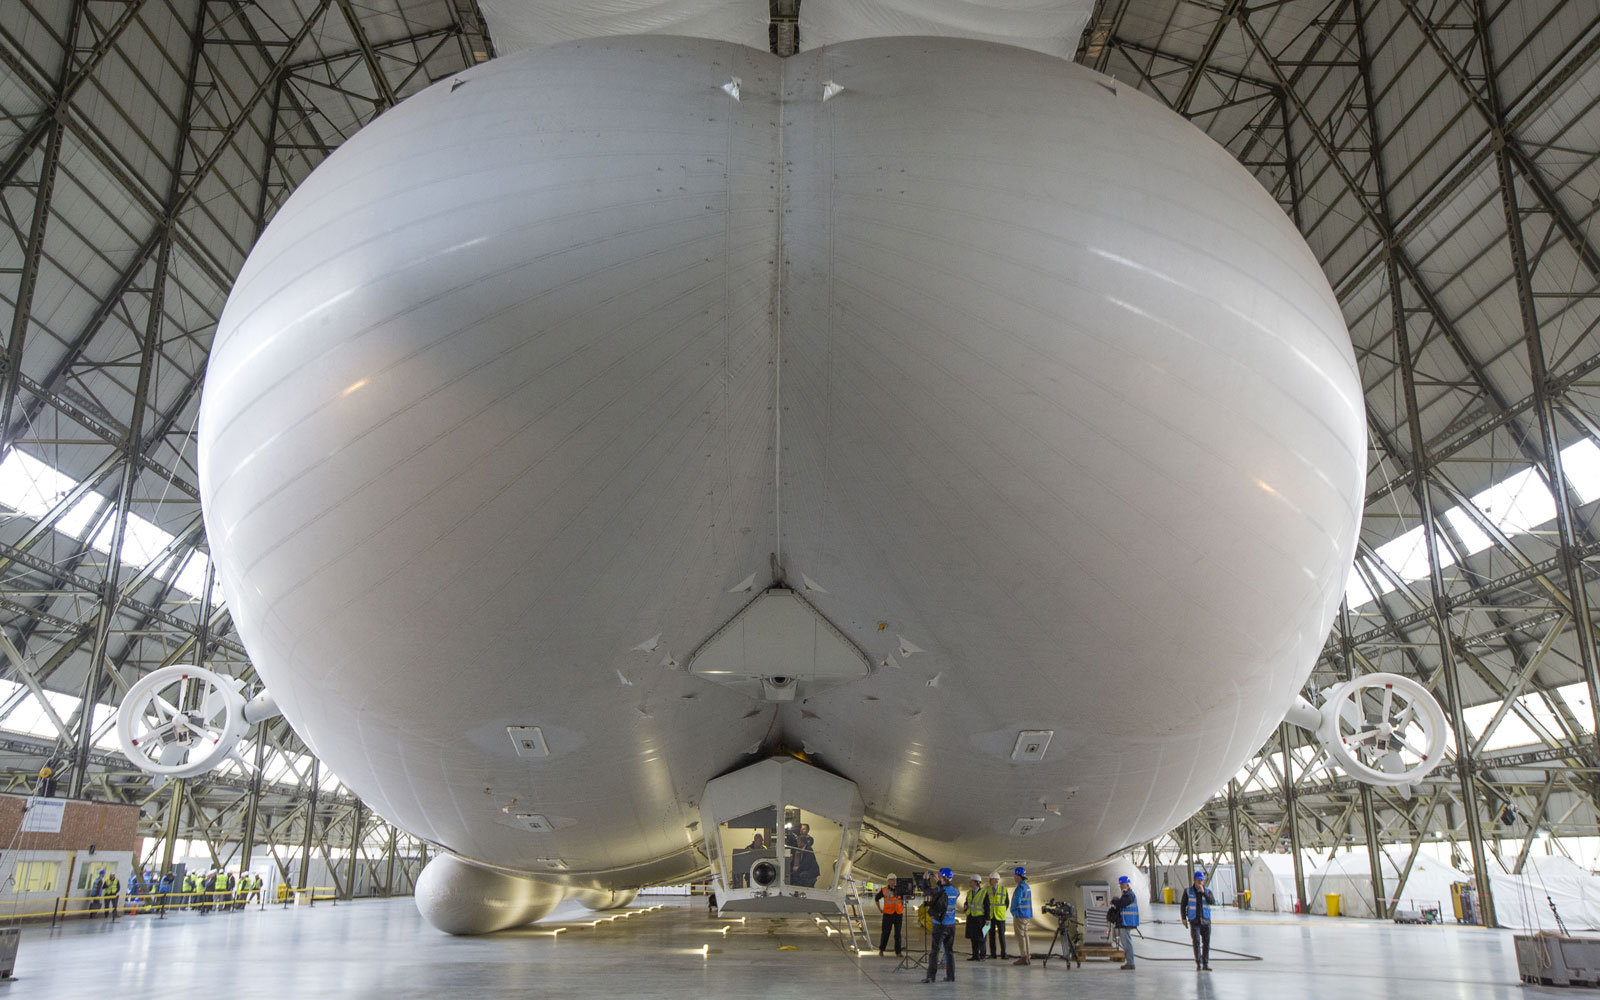 The Airlander blimp, from behind.